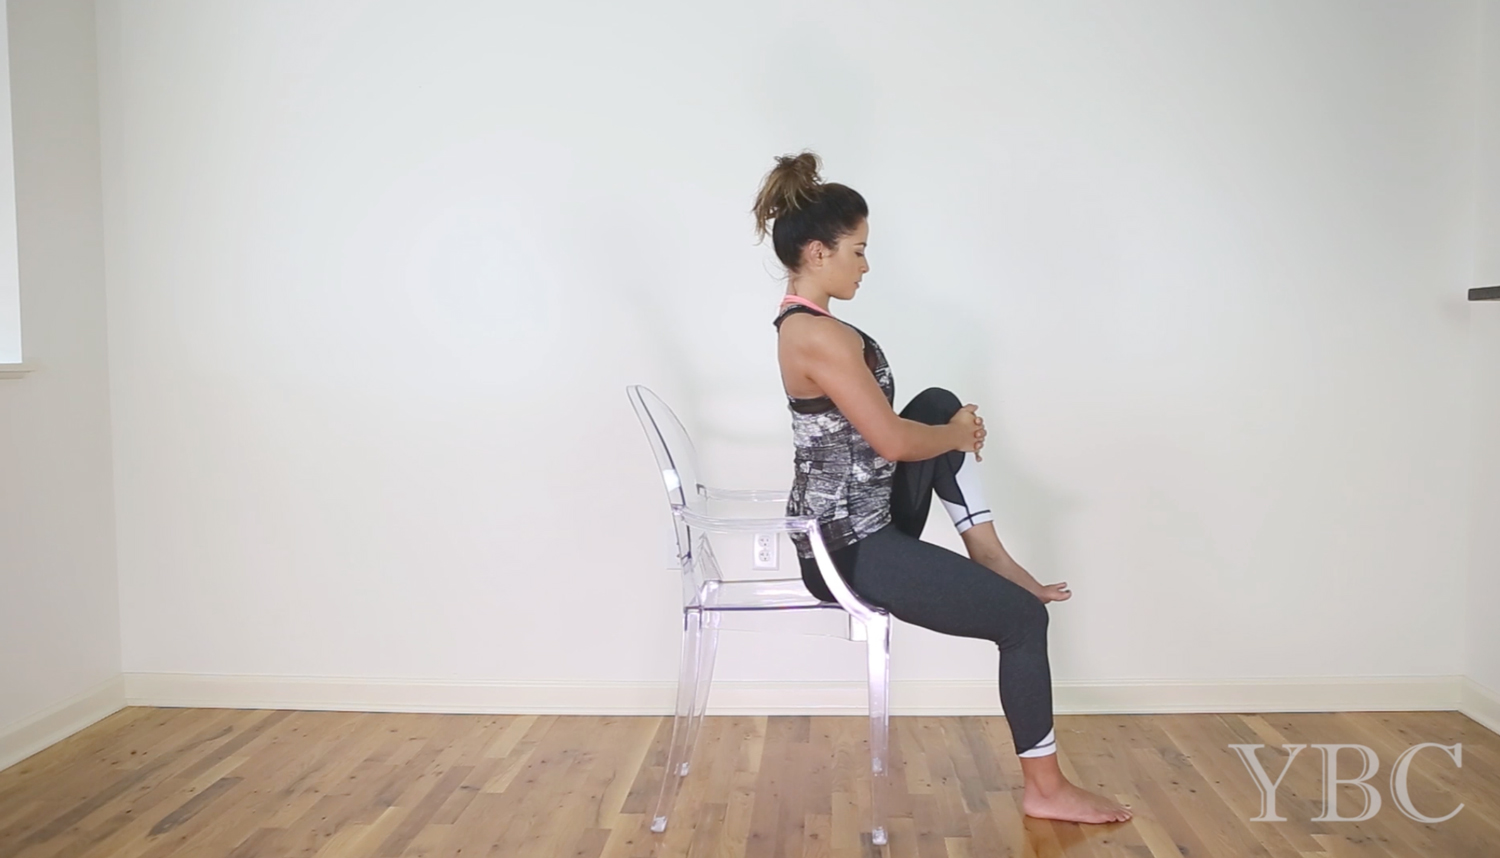 Practice now! 12 Minute Chair Yoga for Travel and the Office  Wearing:  vimmia pants  (now on sale!), alala tank ( diff color on sale !)  Using: ghost chair ( now on sale !)